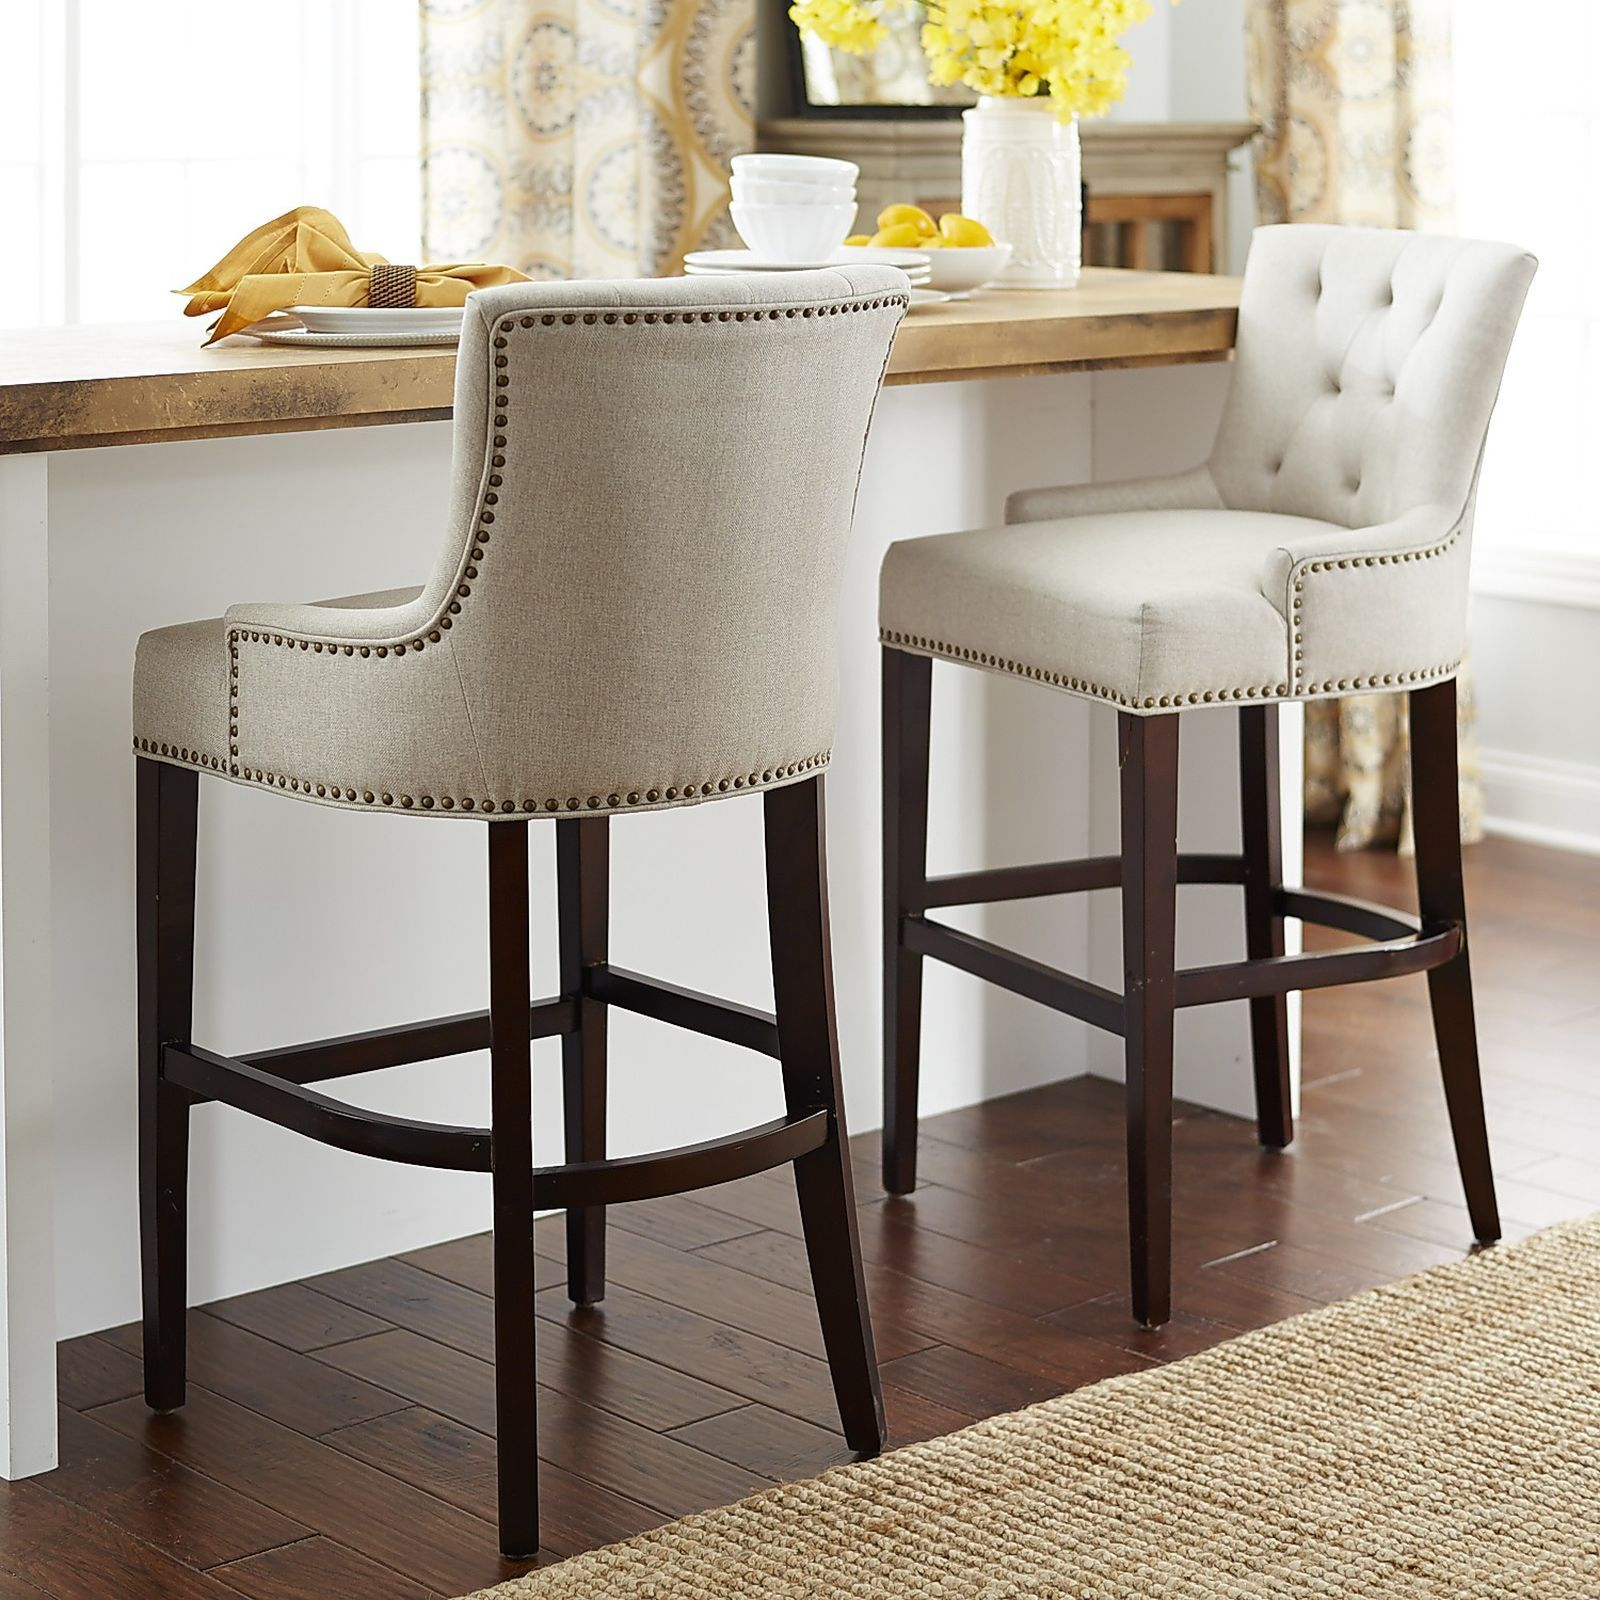 Our Ava Stools Offer A Most Elegant Perch Classic Tailoring Includes A Comfortable Comfortable Bar Stools Stools For Kitchen Island Bar Stools Kitchen Island